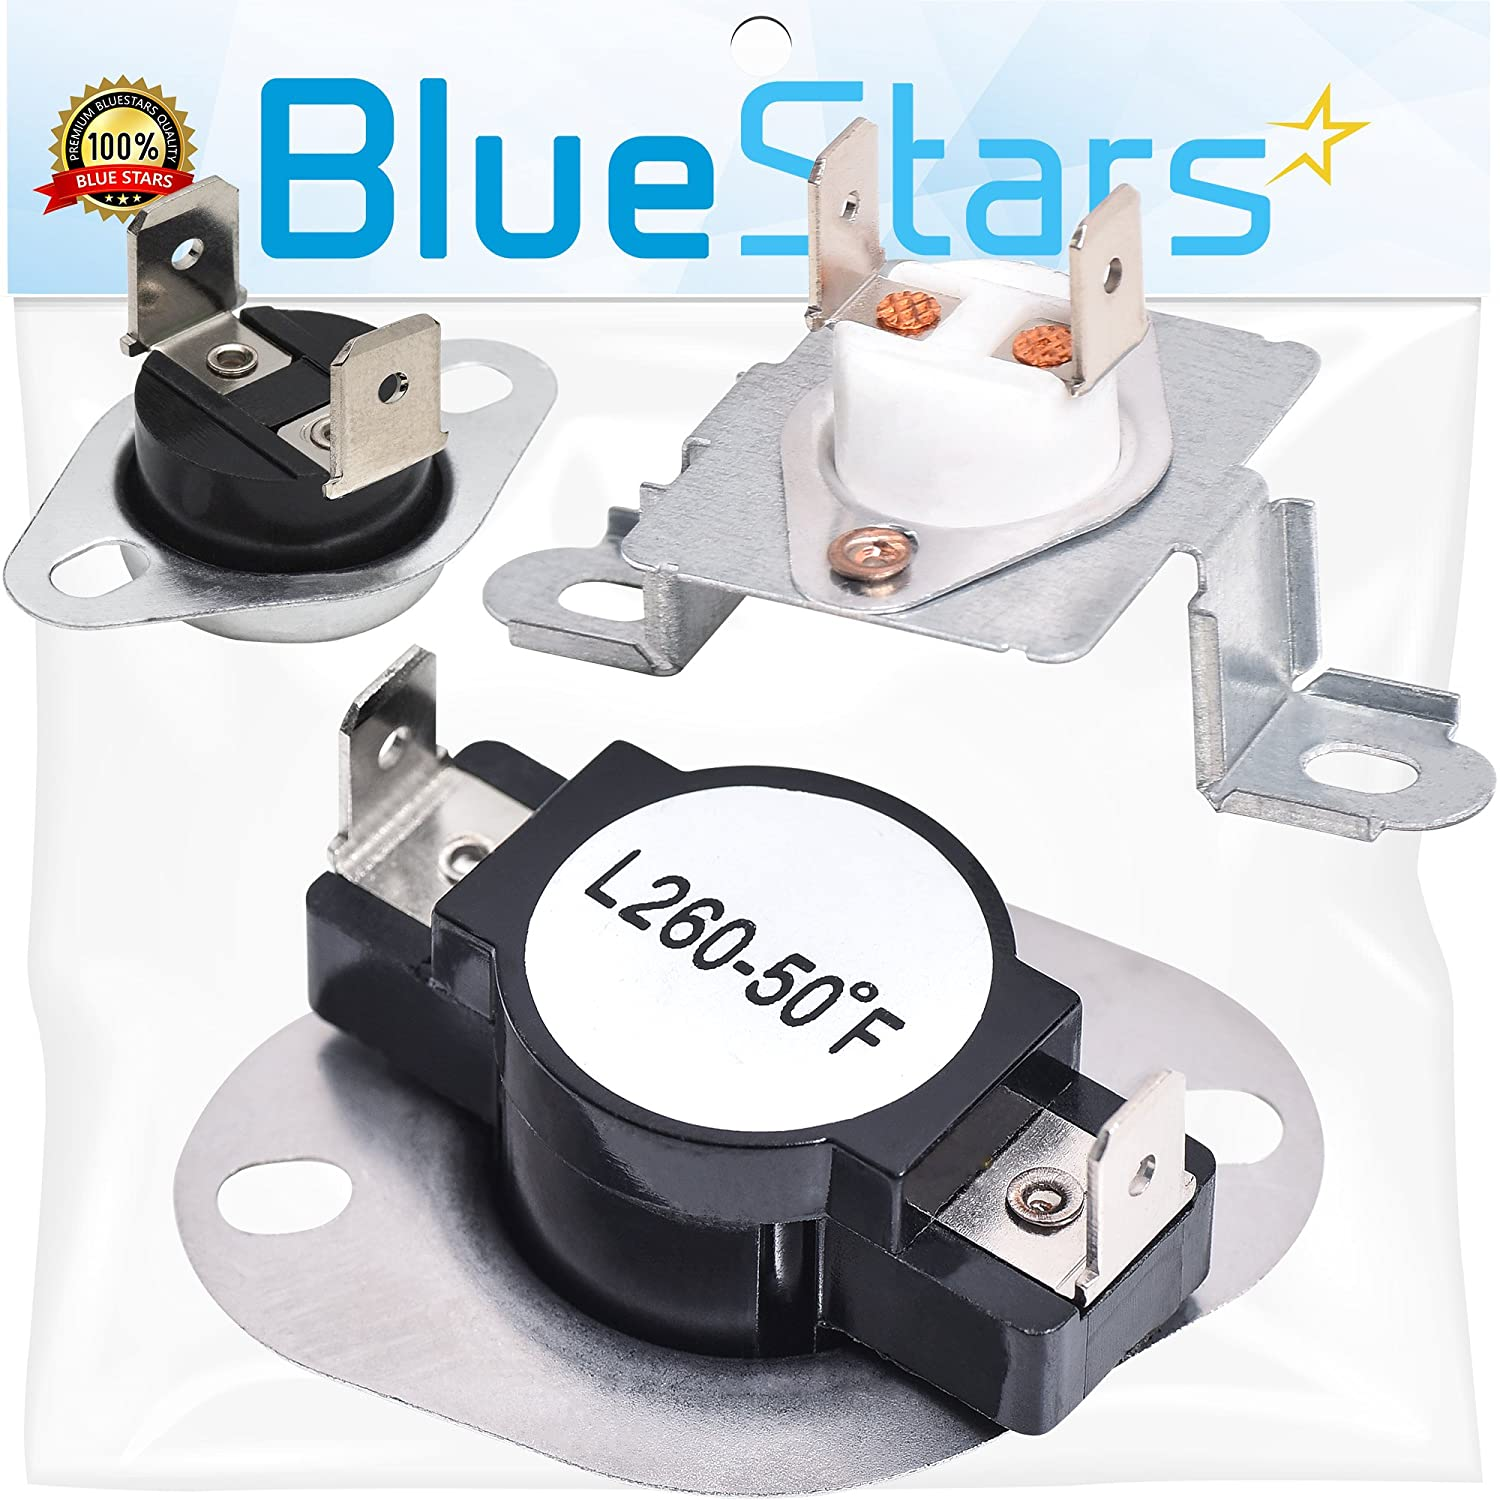 DC96-00887A & DC47-00018A & DC47-00016A Dryer Thermal Fuse and Thermostat Kit Replacement by Blue Stars - Exact Fit For Samsung & Kenmore Dryers